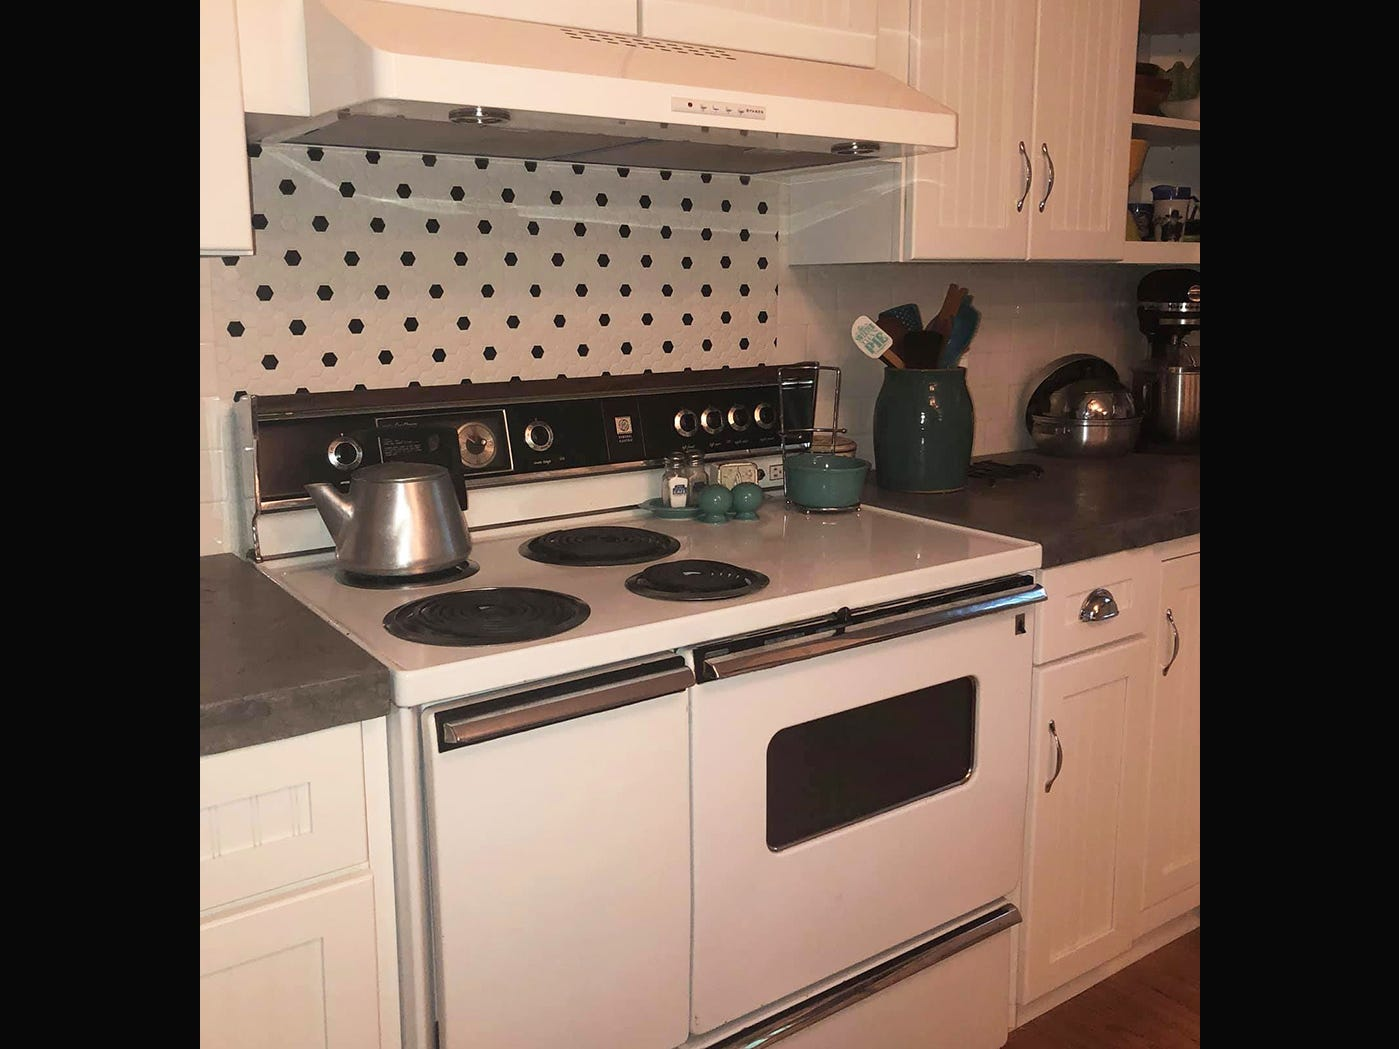 The 1956 General Electric stove found a temporary home in Kathleen Walter's retro kitchen. She plans to replace it with a restored 1955 General Electric stove with double ovens in the near future.